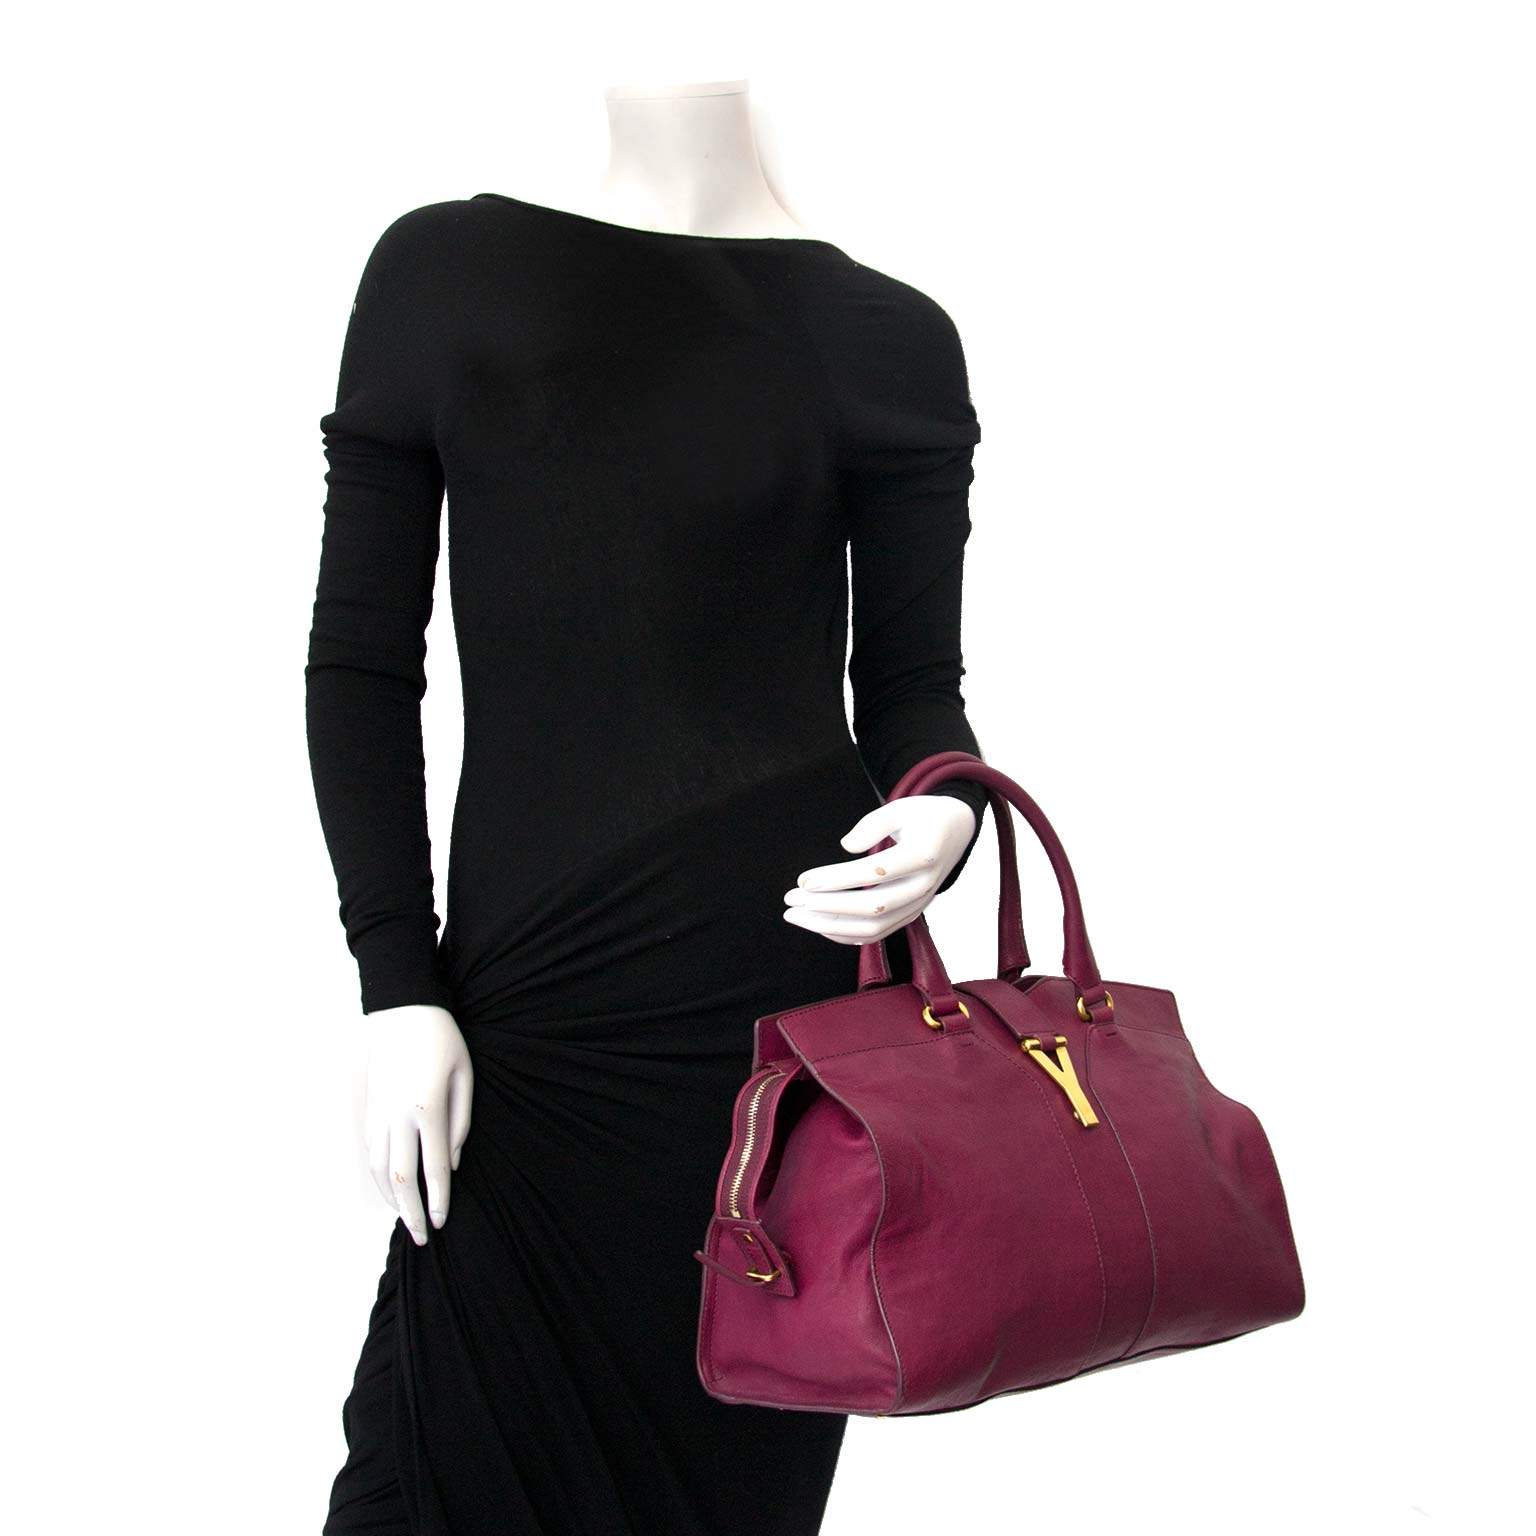 ... Saint Laurent Cabas Y Purple Leather Tote for sale at Labellov · Yves  Saint Laurent b2125e15b558a